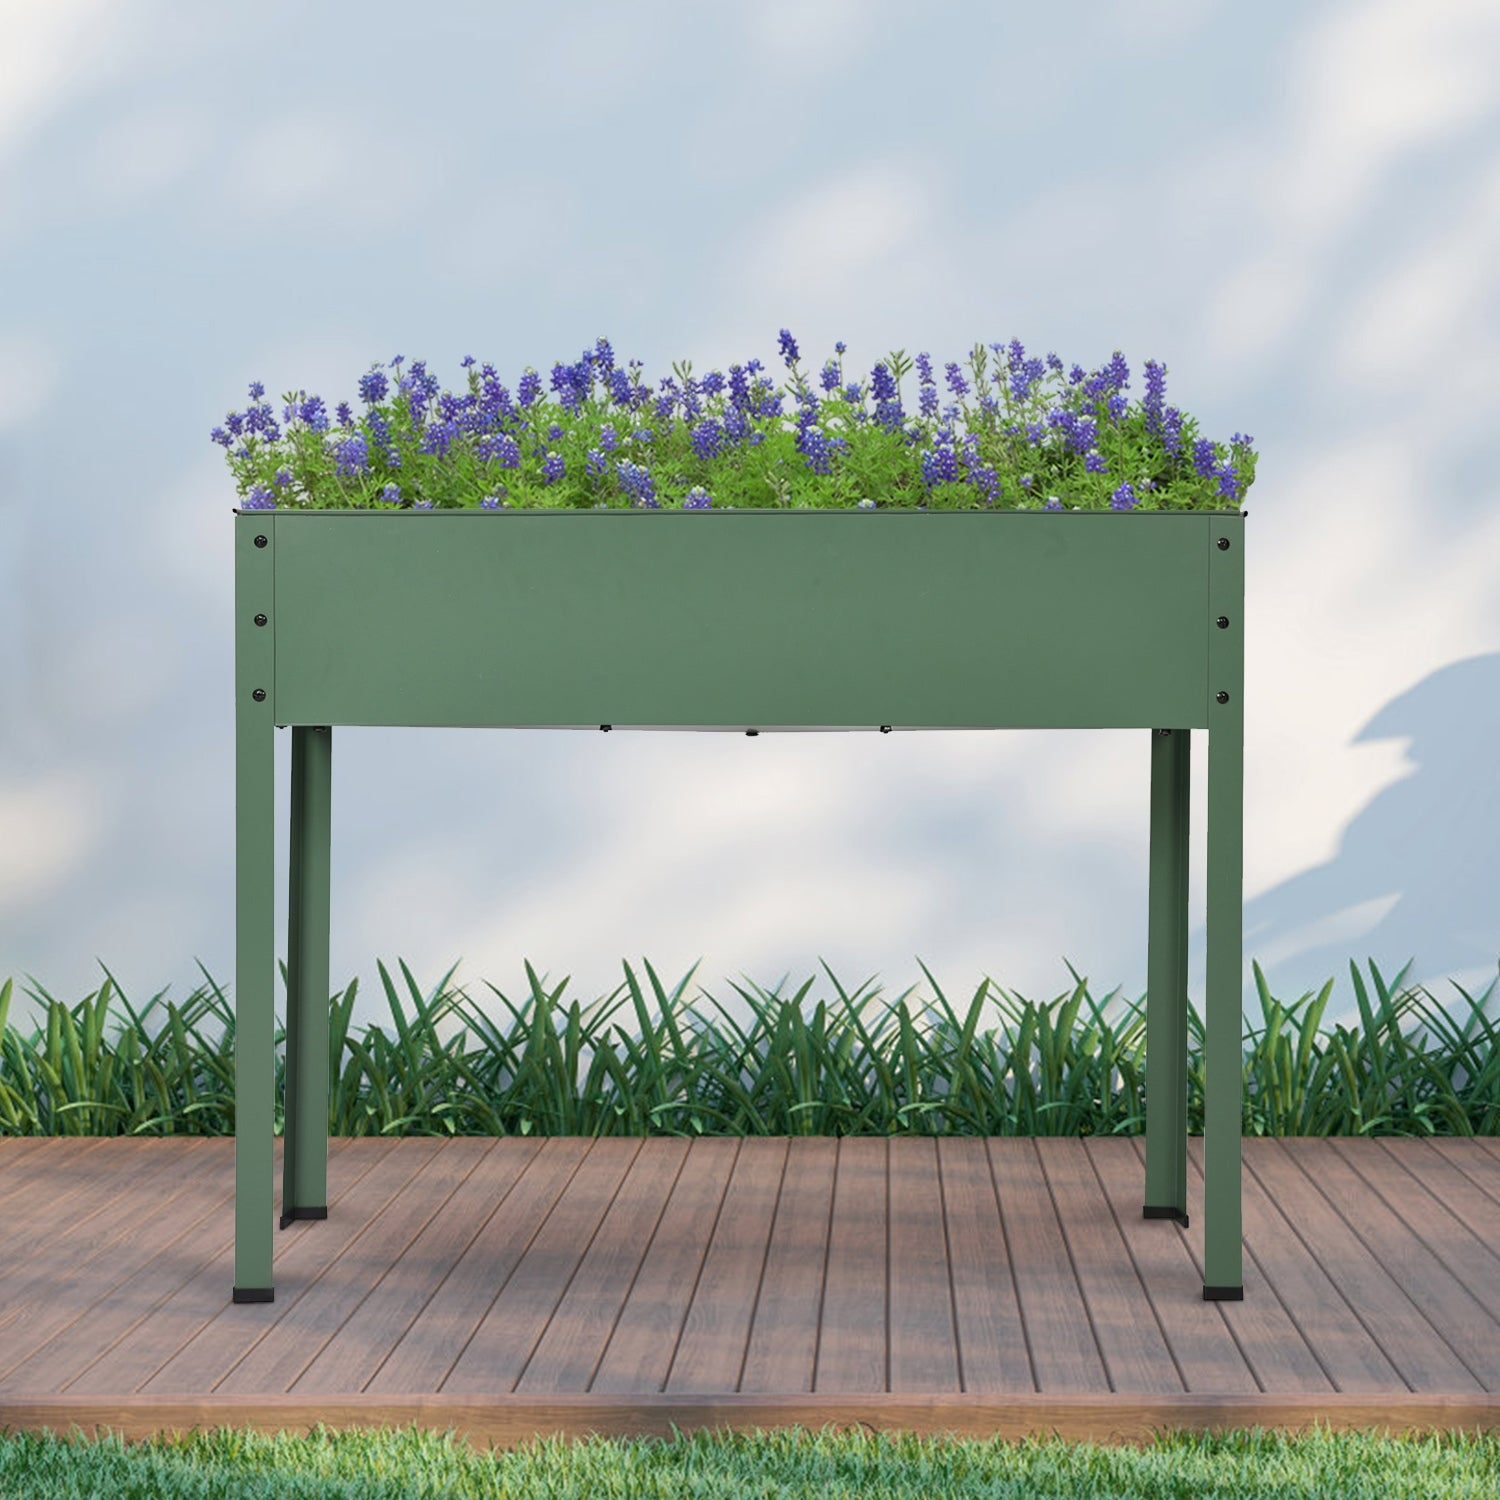 Mois Galvanized Metal Raised Garden Bed Planter Box By Havenside Home Overstock 30551311 Green1